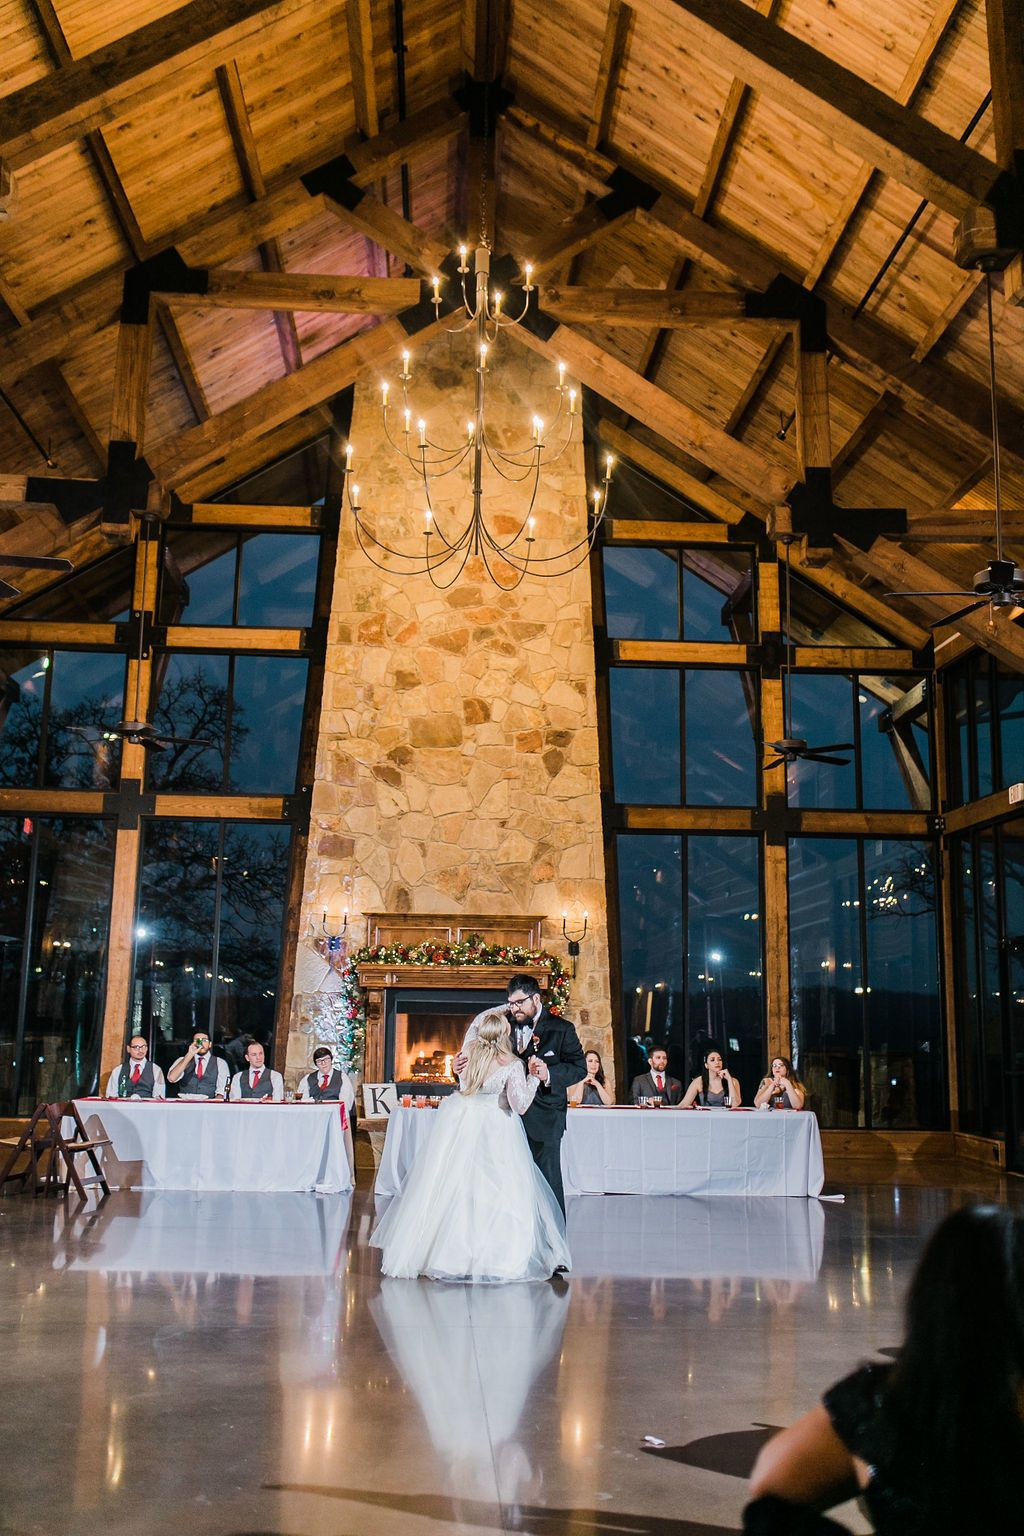 First Dance Winter Wedding Reception Christmas Wedding Reception Lodge Wedding Reception Winter Wedding Receptions Dfw Wedding Venues Wedding Venues